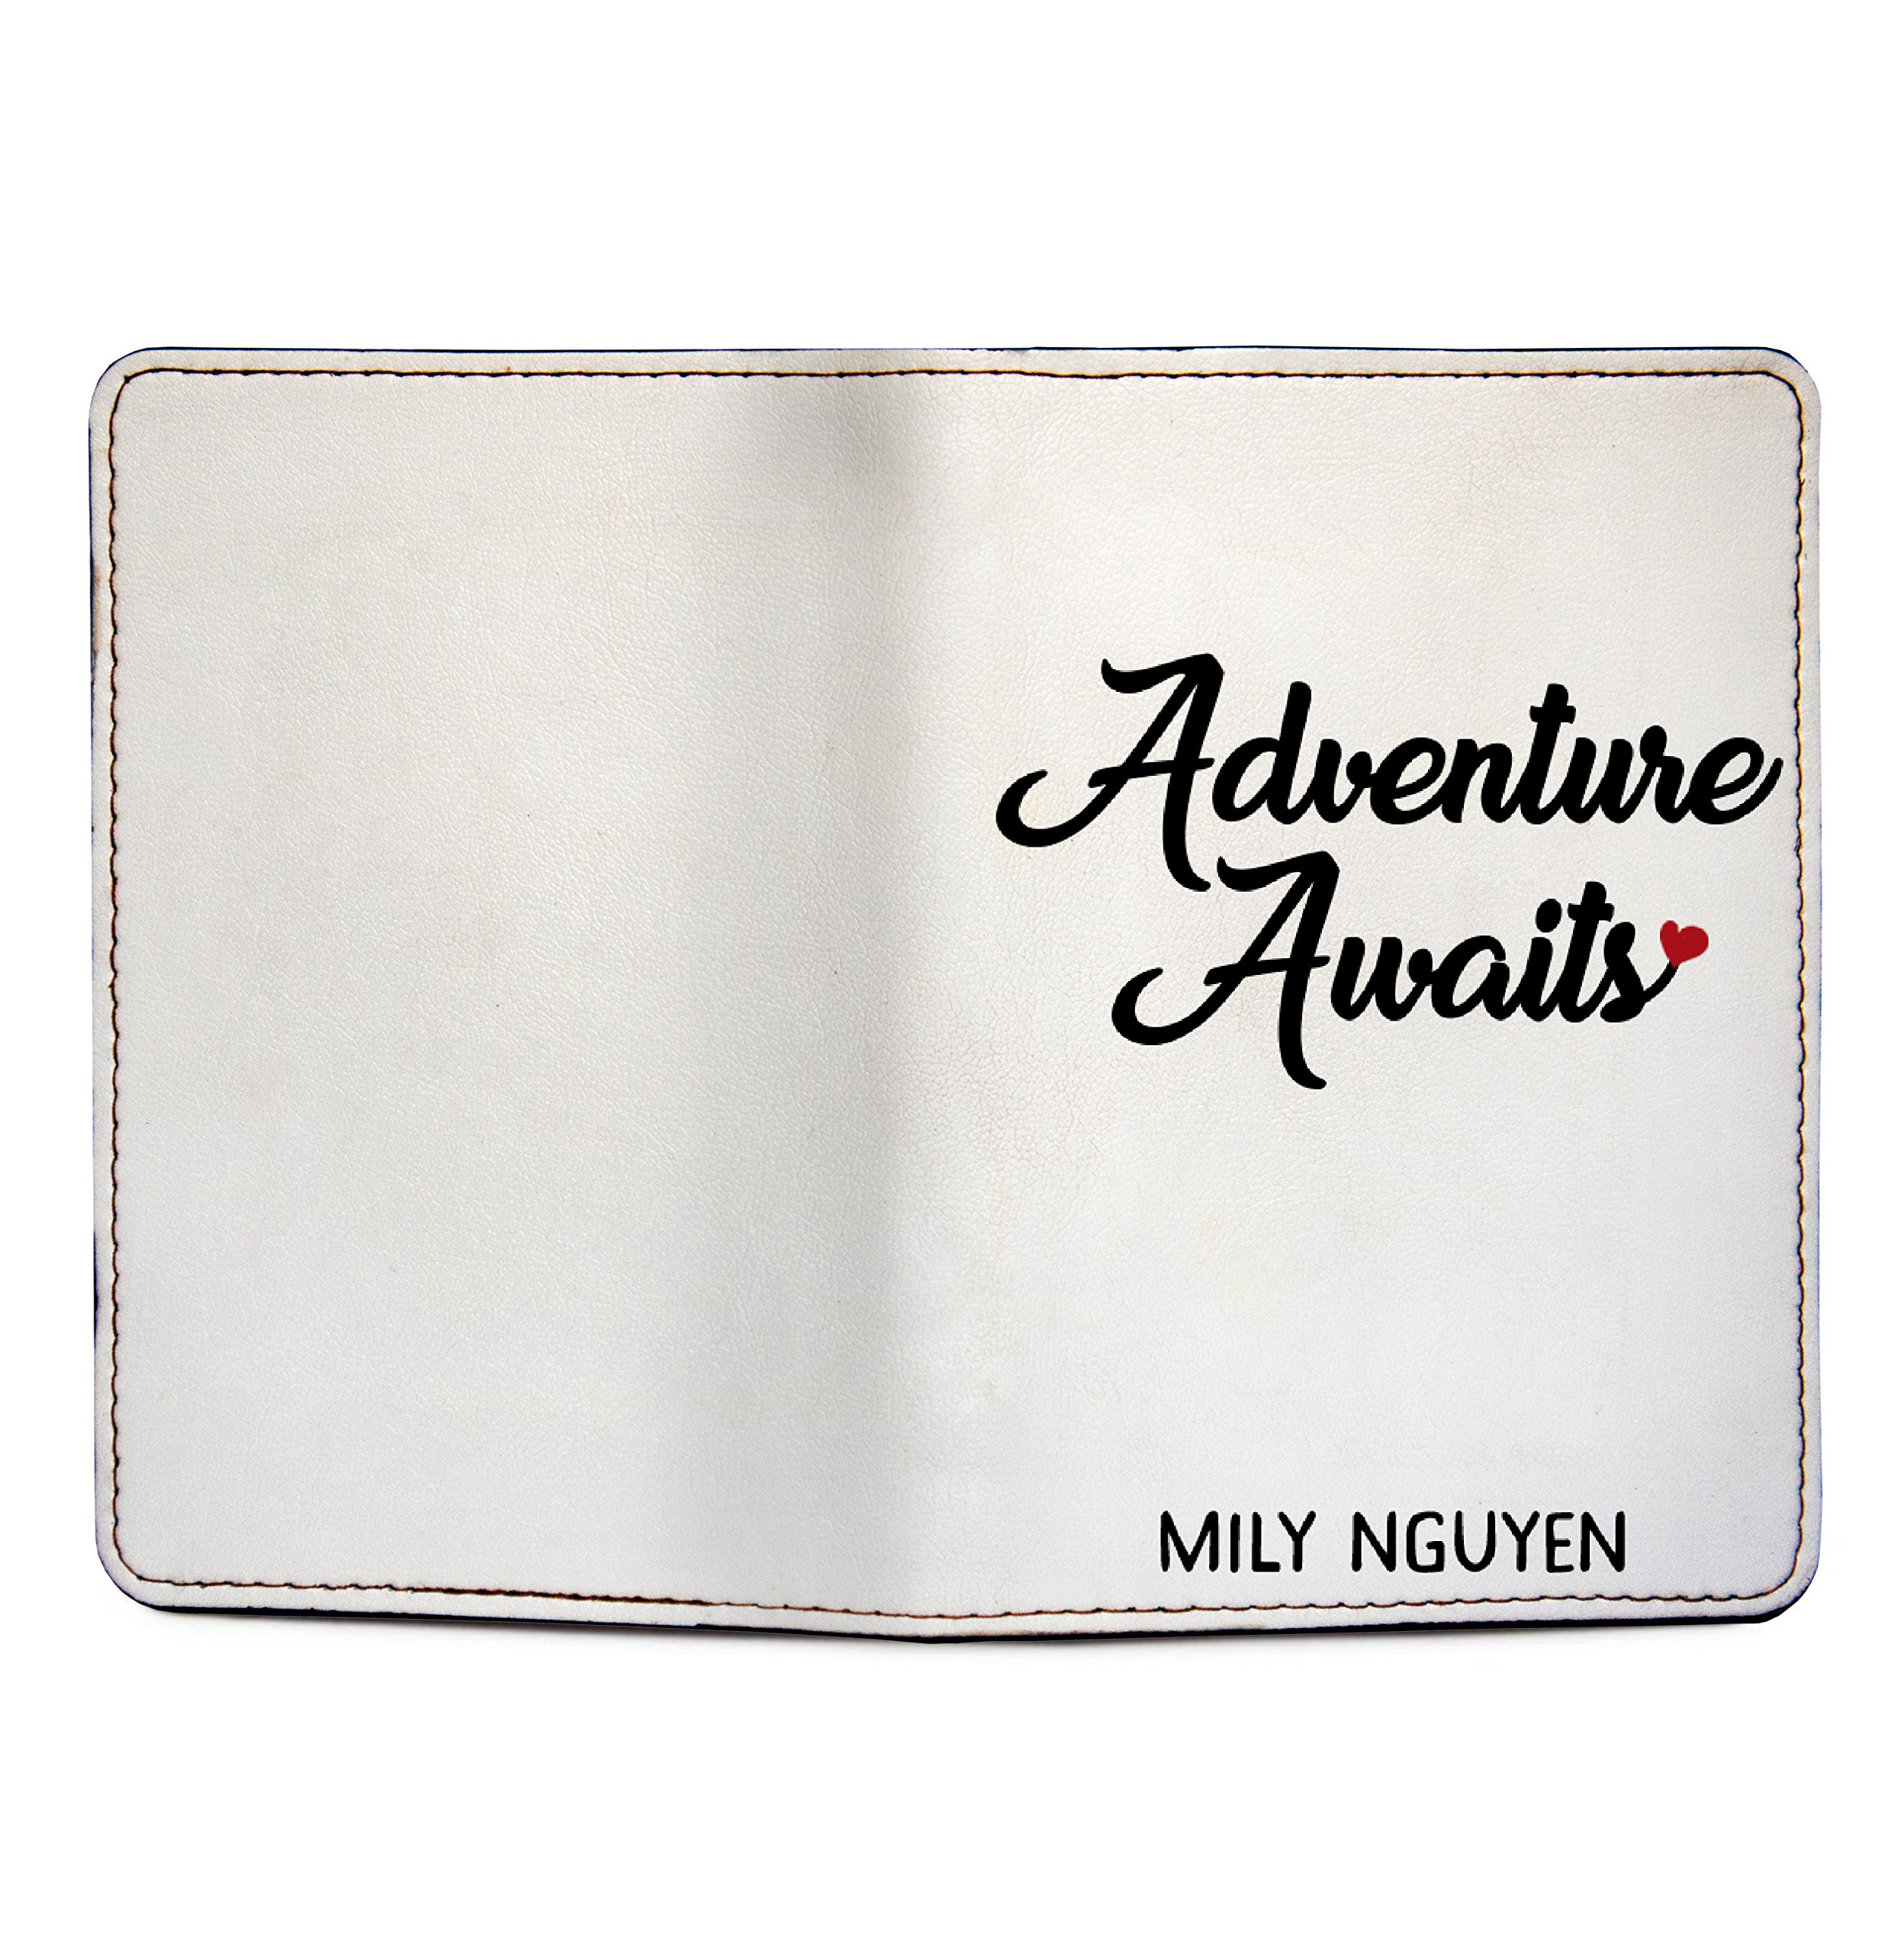 Adventure Awaits - Couple Passport Holder Personalized Passport Cover Set of 2 by With Love From Julie (Image #5)